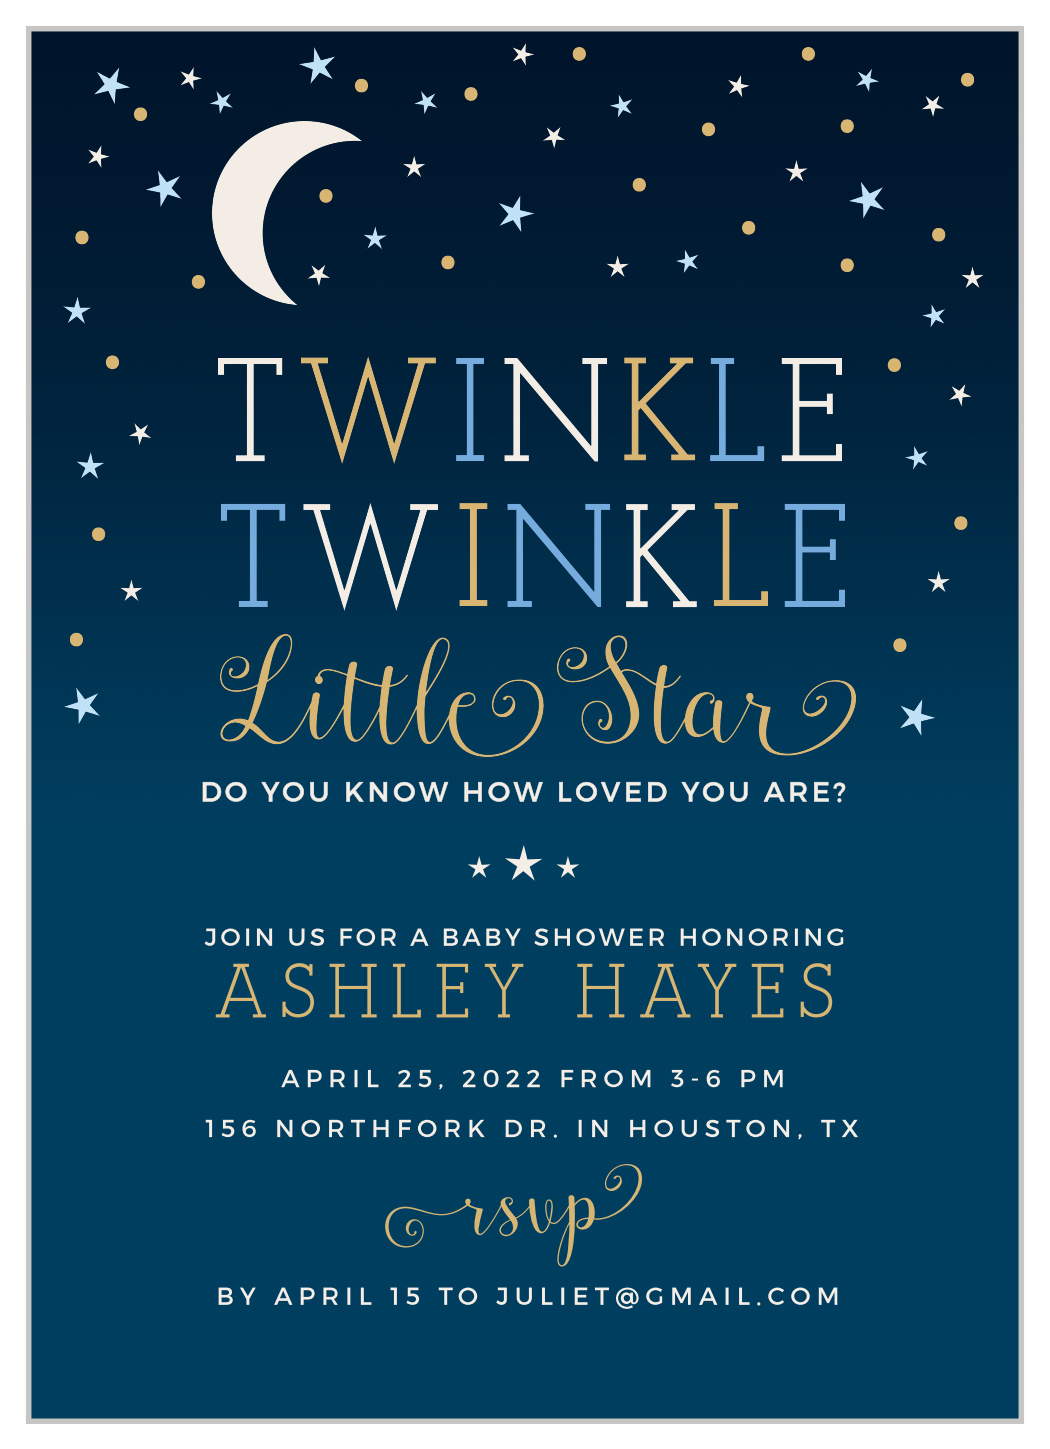 Twinkle Twinkle Little Star Baby Shower Invitation Wording : twinkle, little, shower, invitation, wording, Twinkle, Little, Shower, Invitations, Basic, Invite